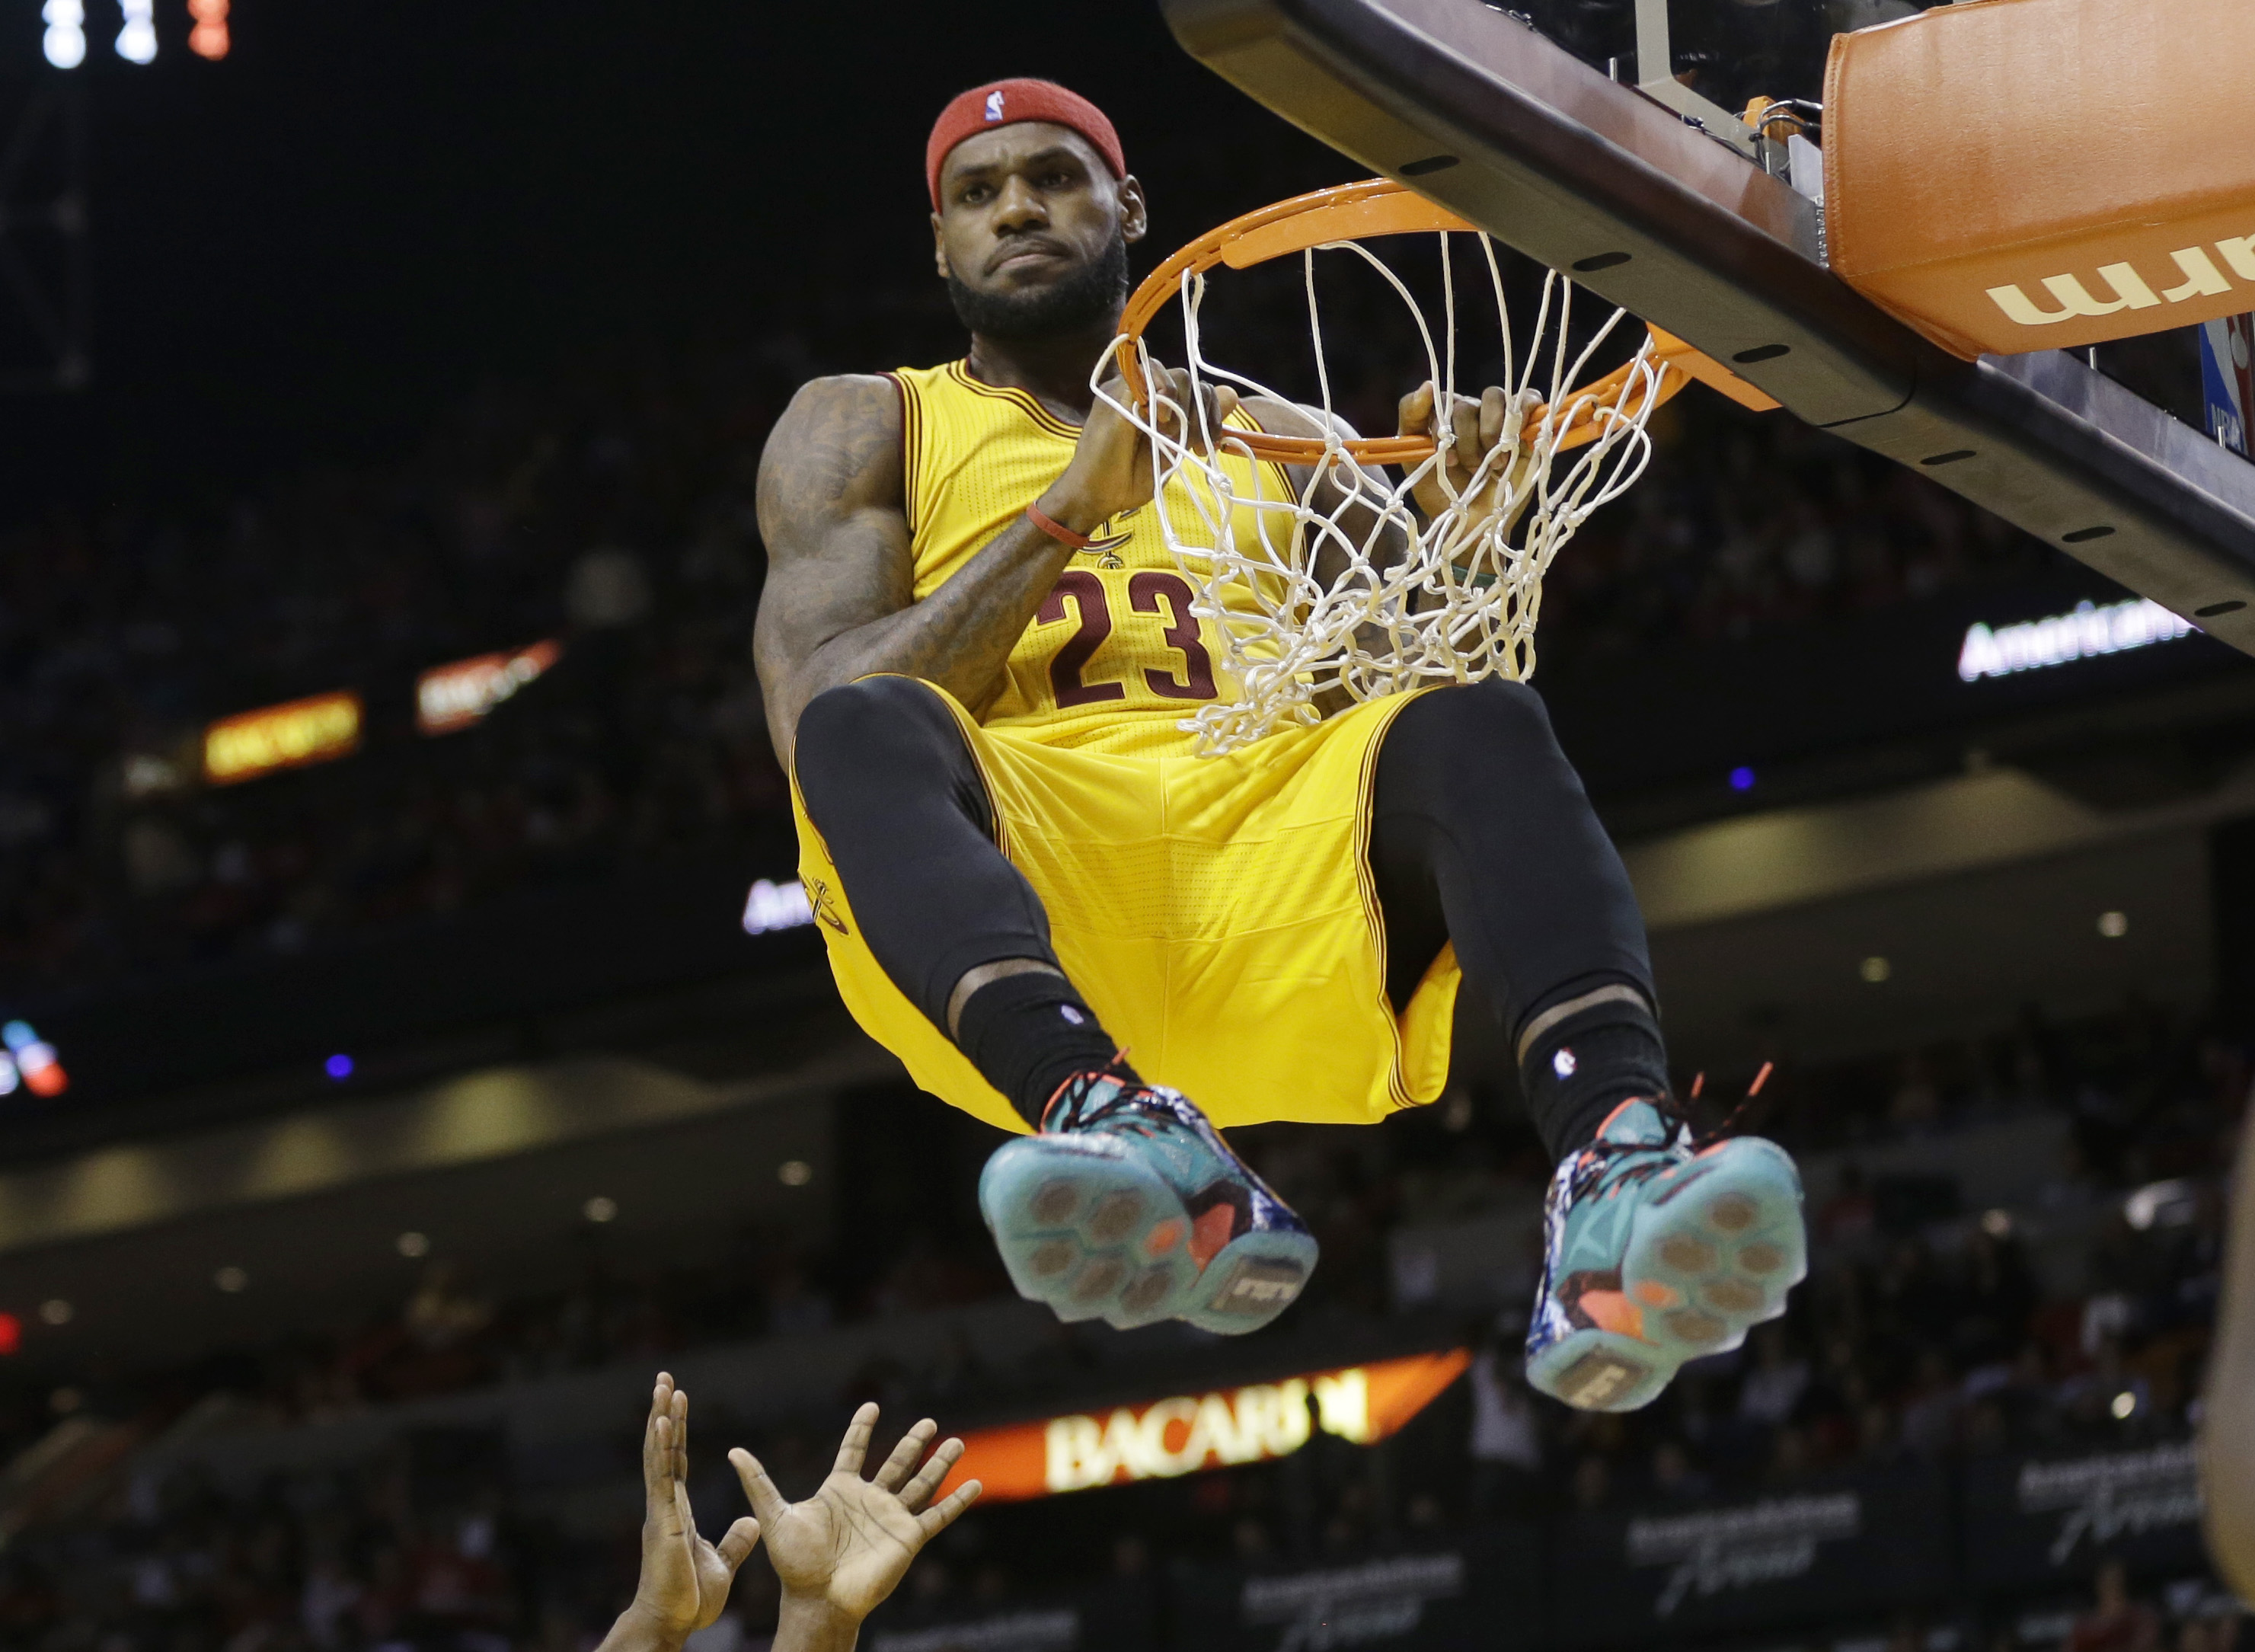 Lebron Reminds Former Cavs Teammate Of Vicious Poster Dunk